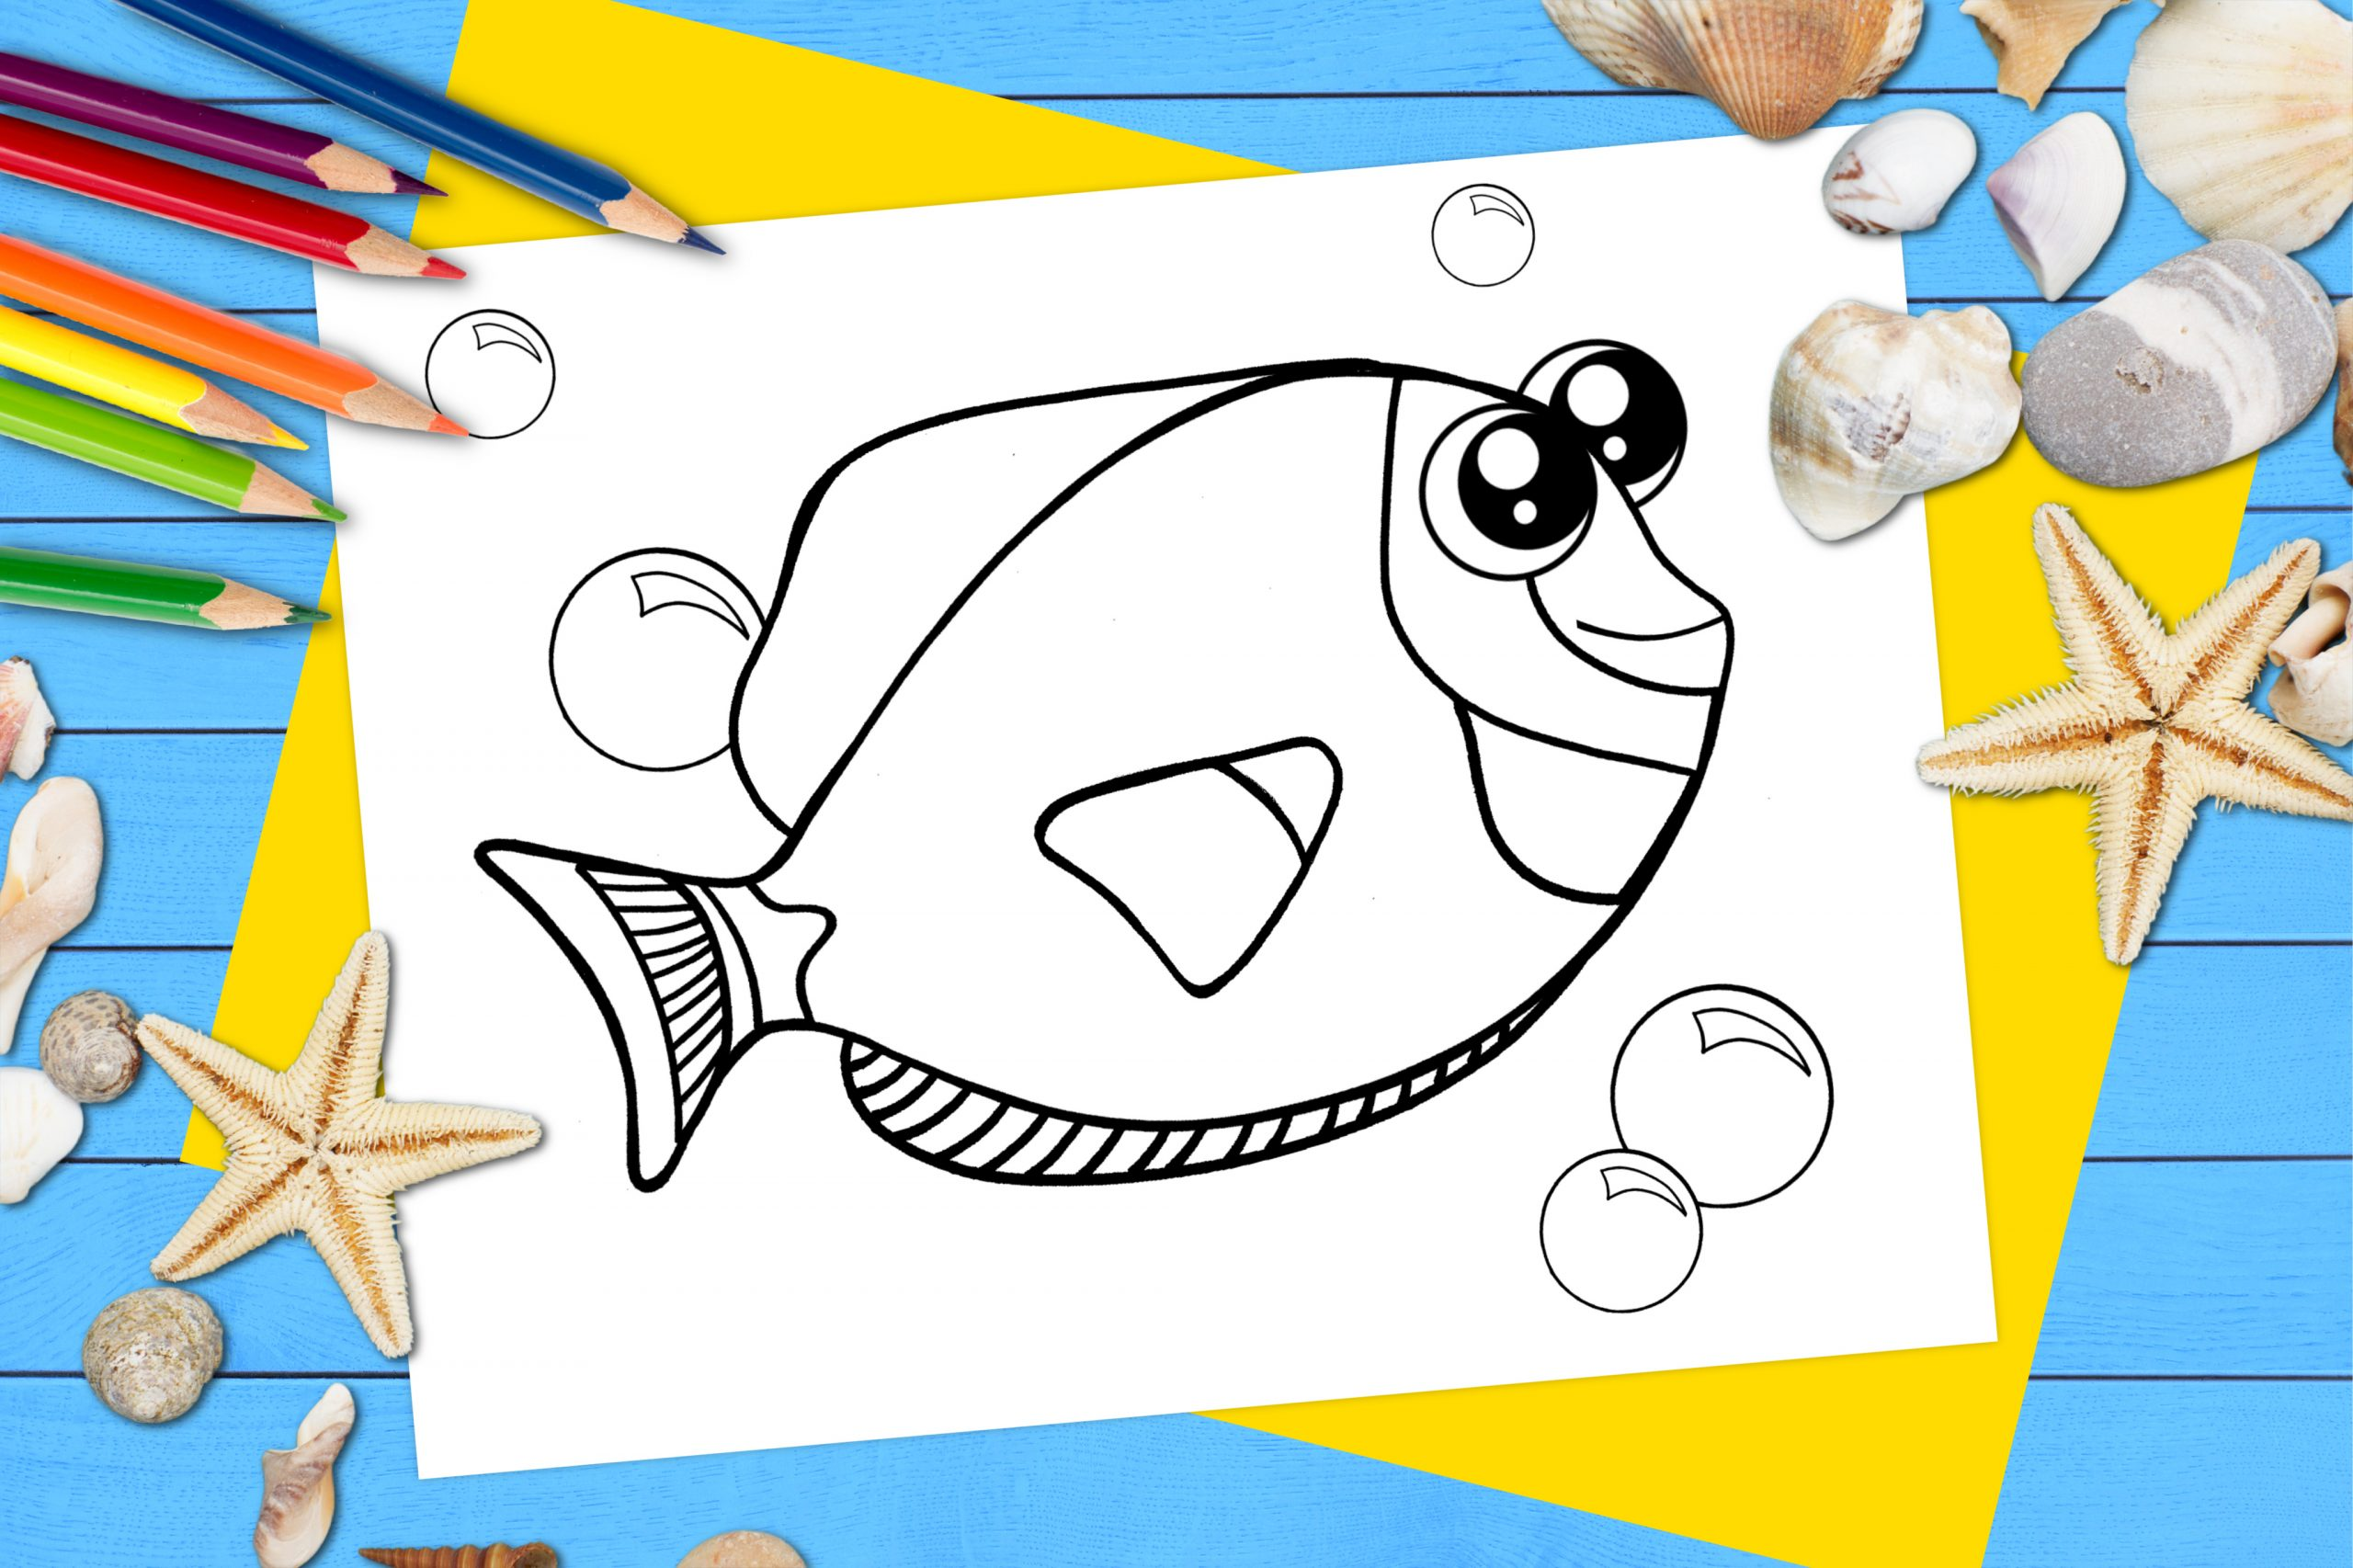 Free Printable Blue Tang Dory Fish Ocean Animal Coloring Page for kids